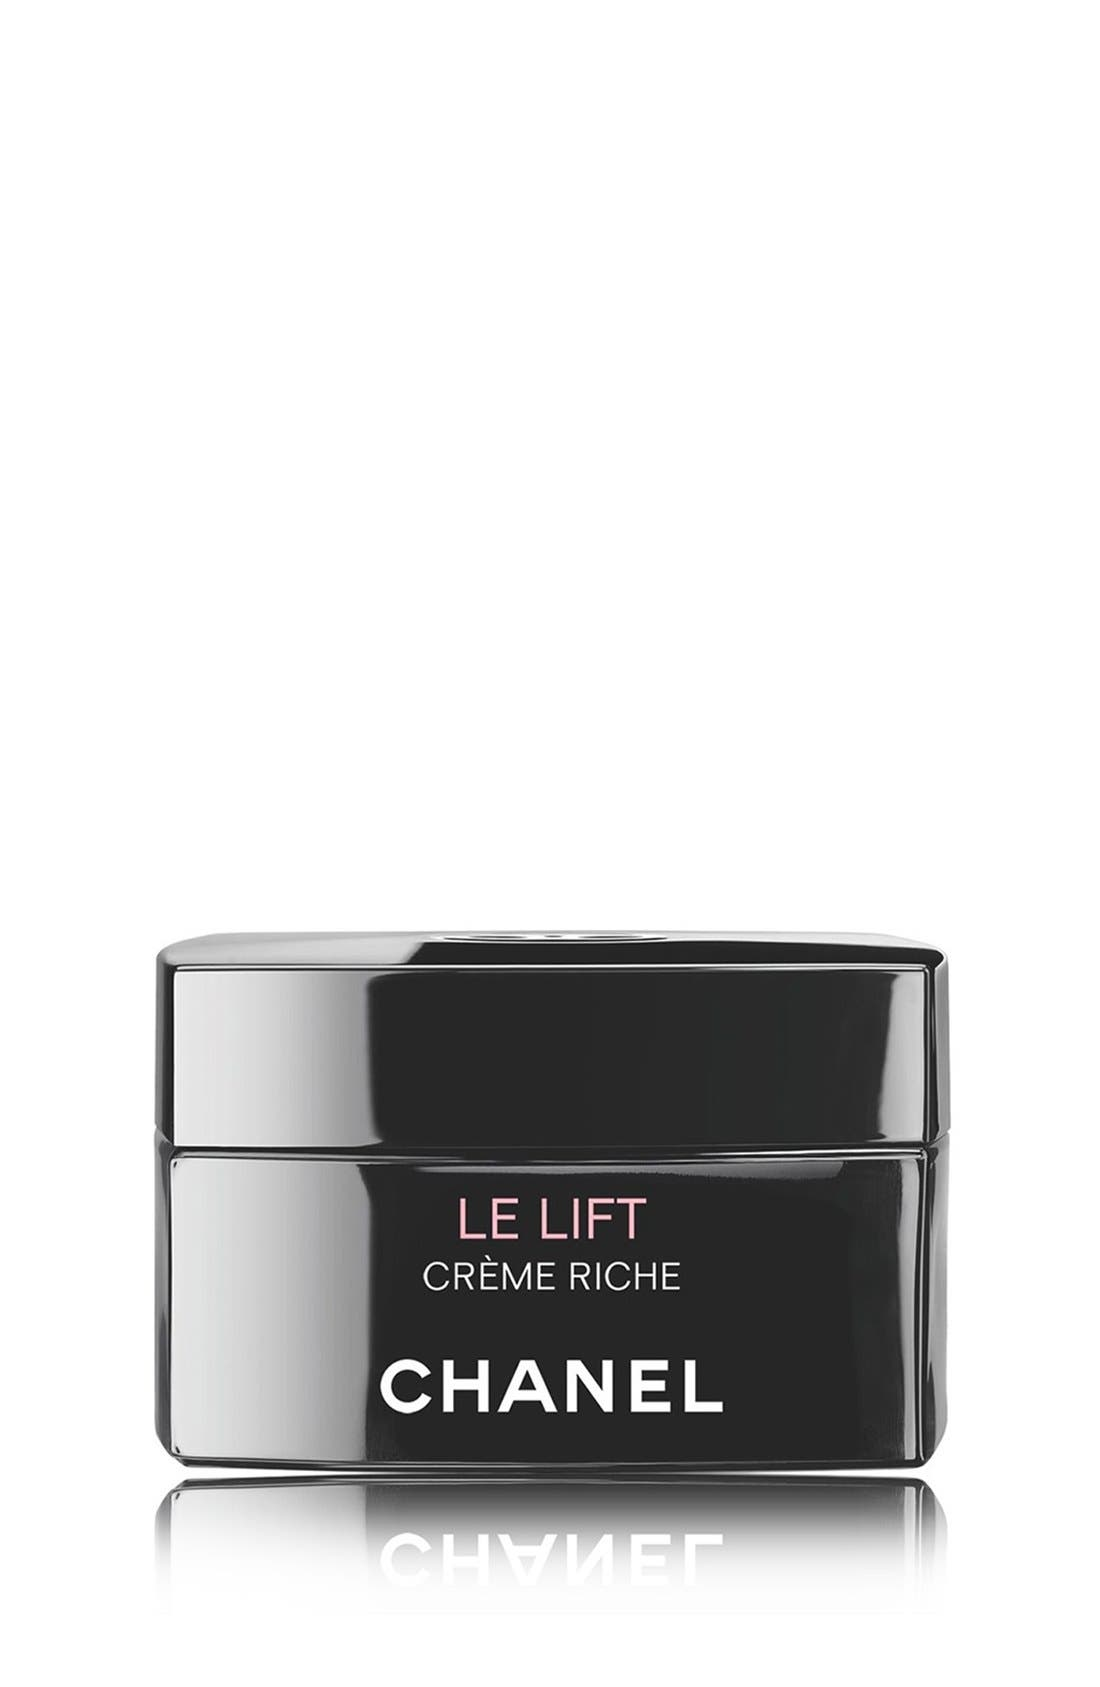 CHANEL LE LIFT CRÈME RICHE 